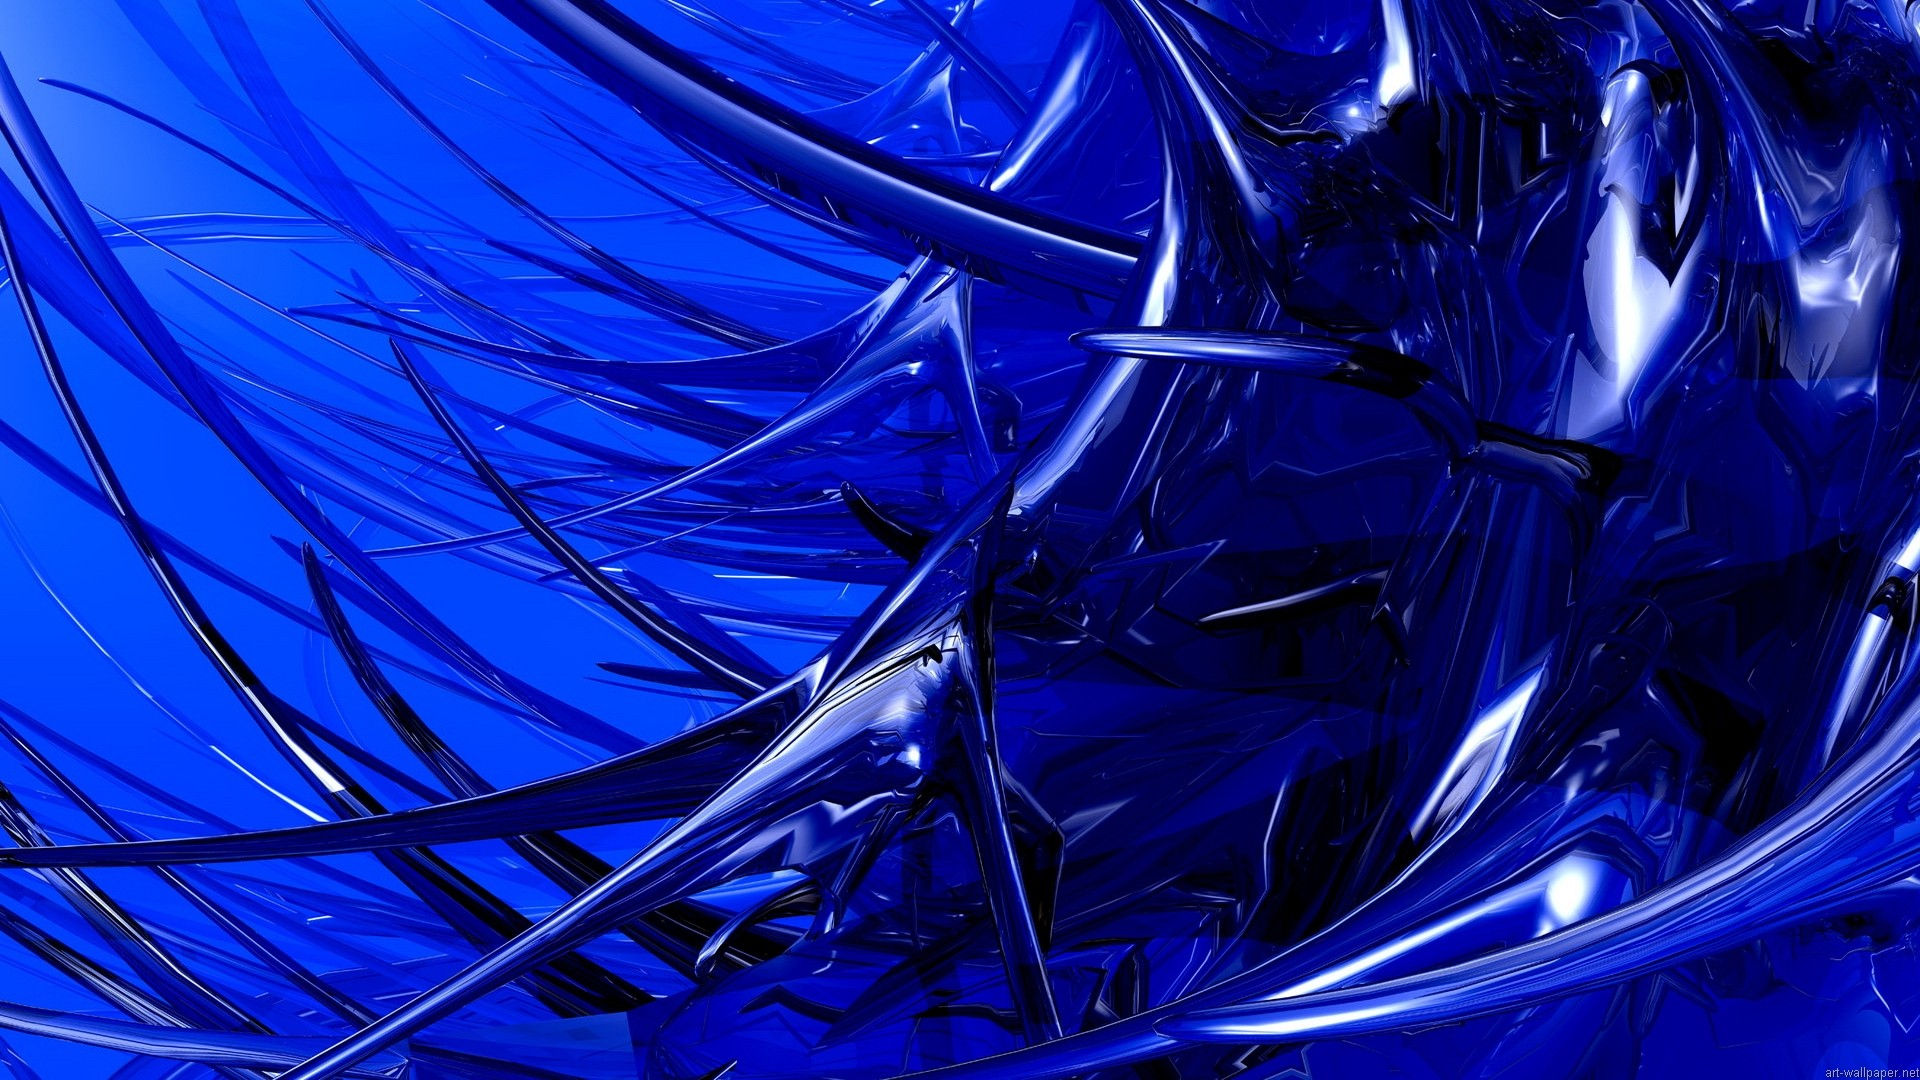 Showing Gallery For Blue Abstract Wallpaper 1080p 1920x1080